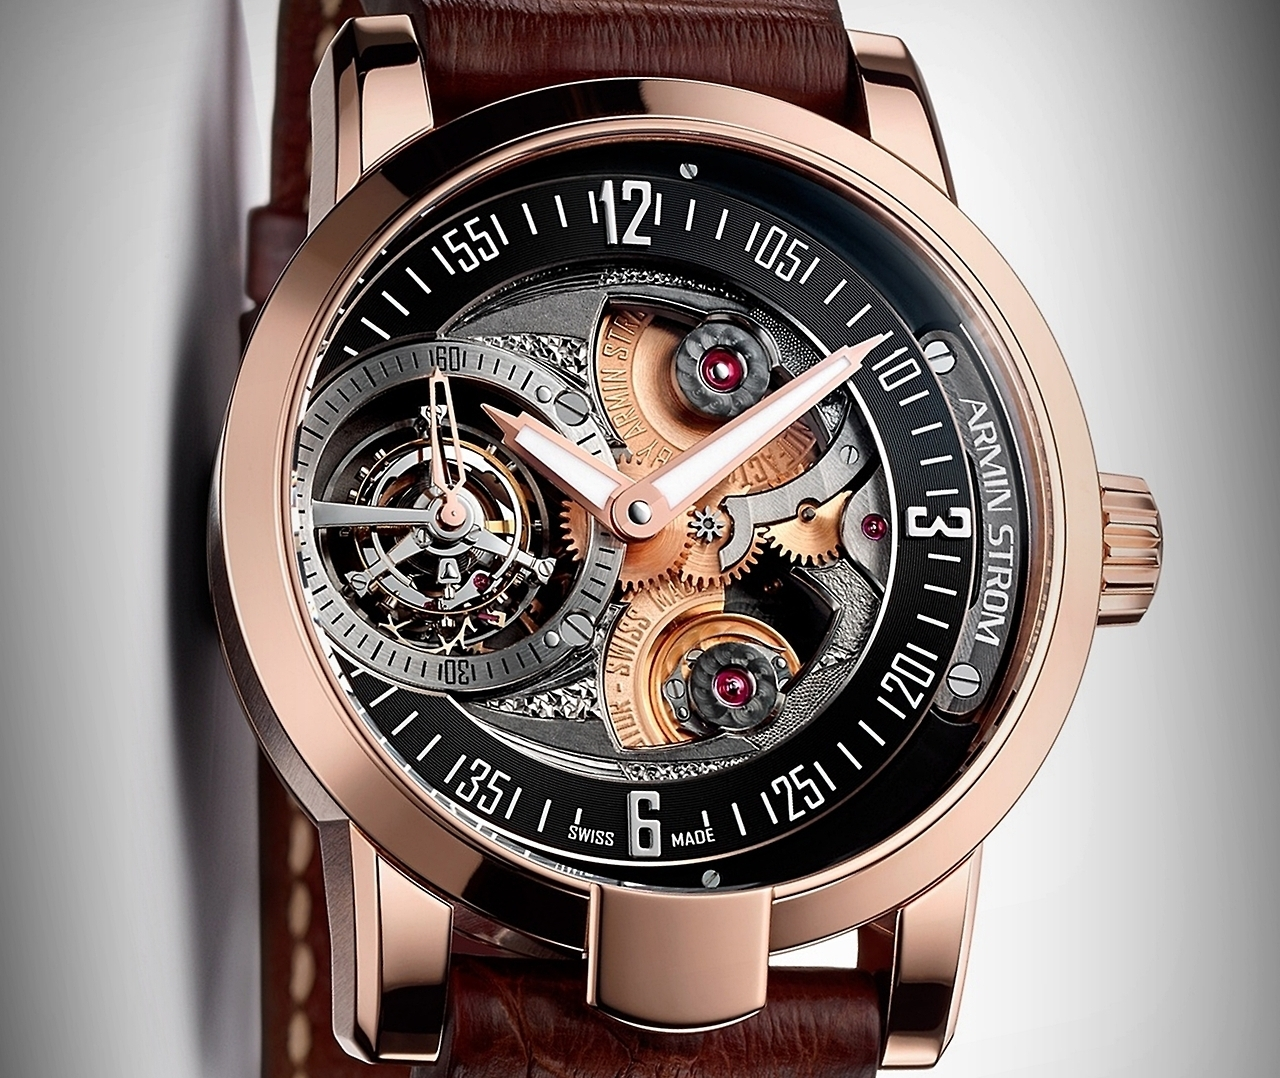 armin-strom-tourbillon-gravity-fire-prezzo-price-0-100_2